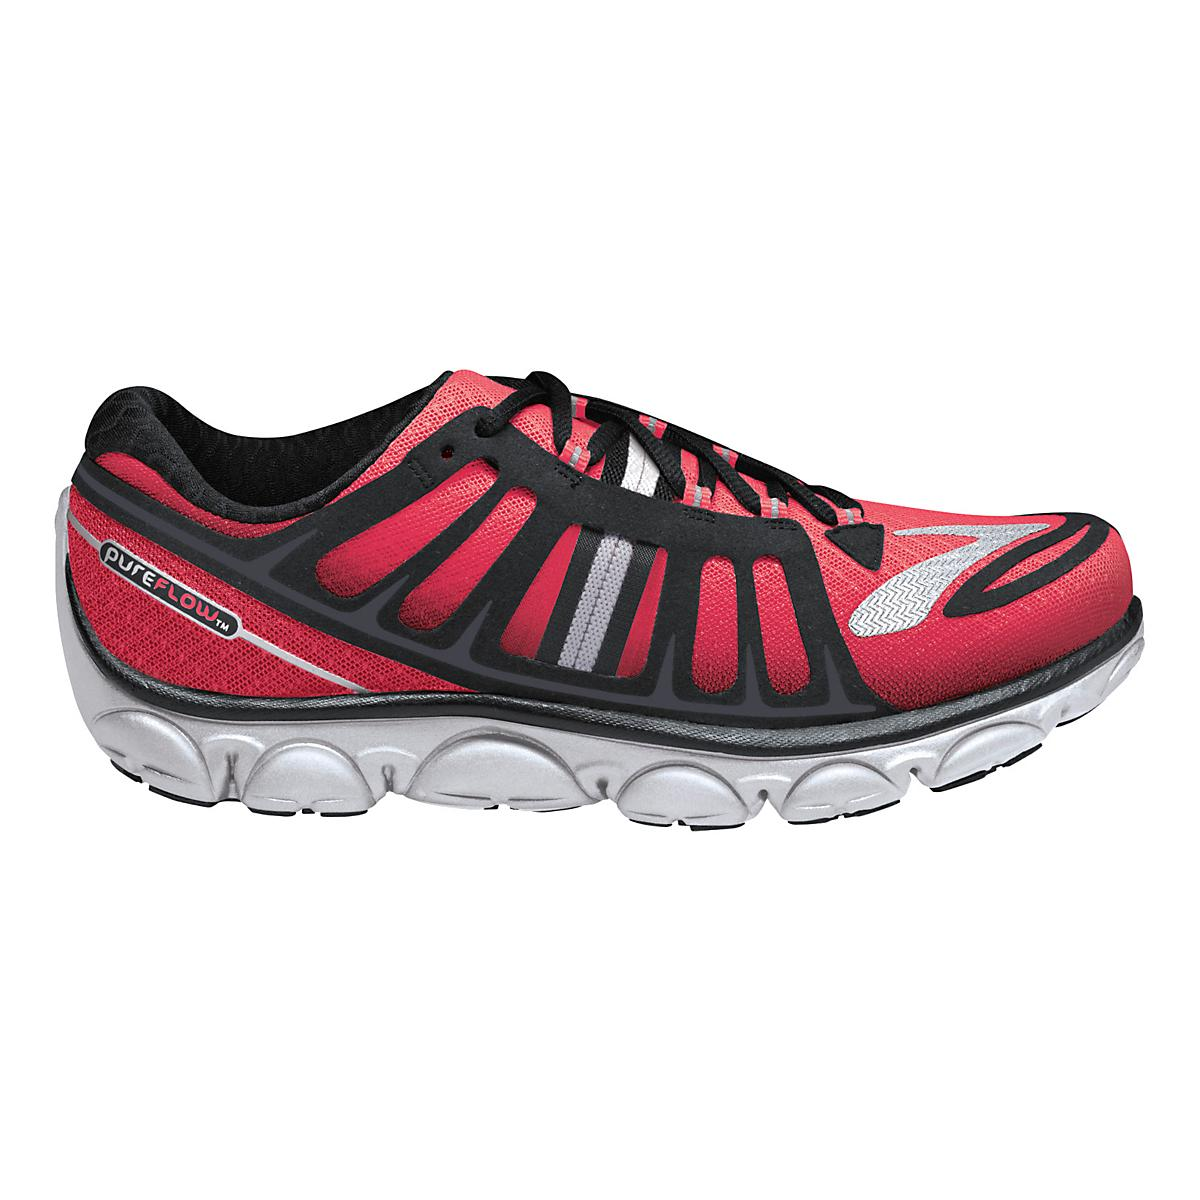 aed0c0314f827 Womens Brooks PureFlow 2 Running Shoe at Road Runner Sports